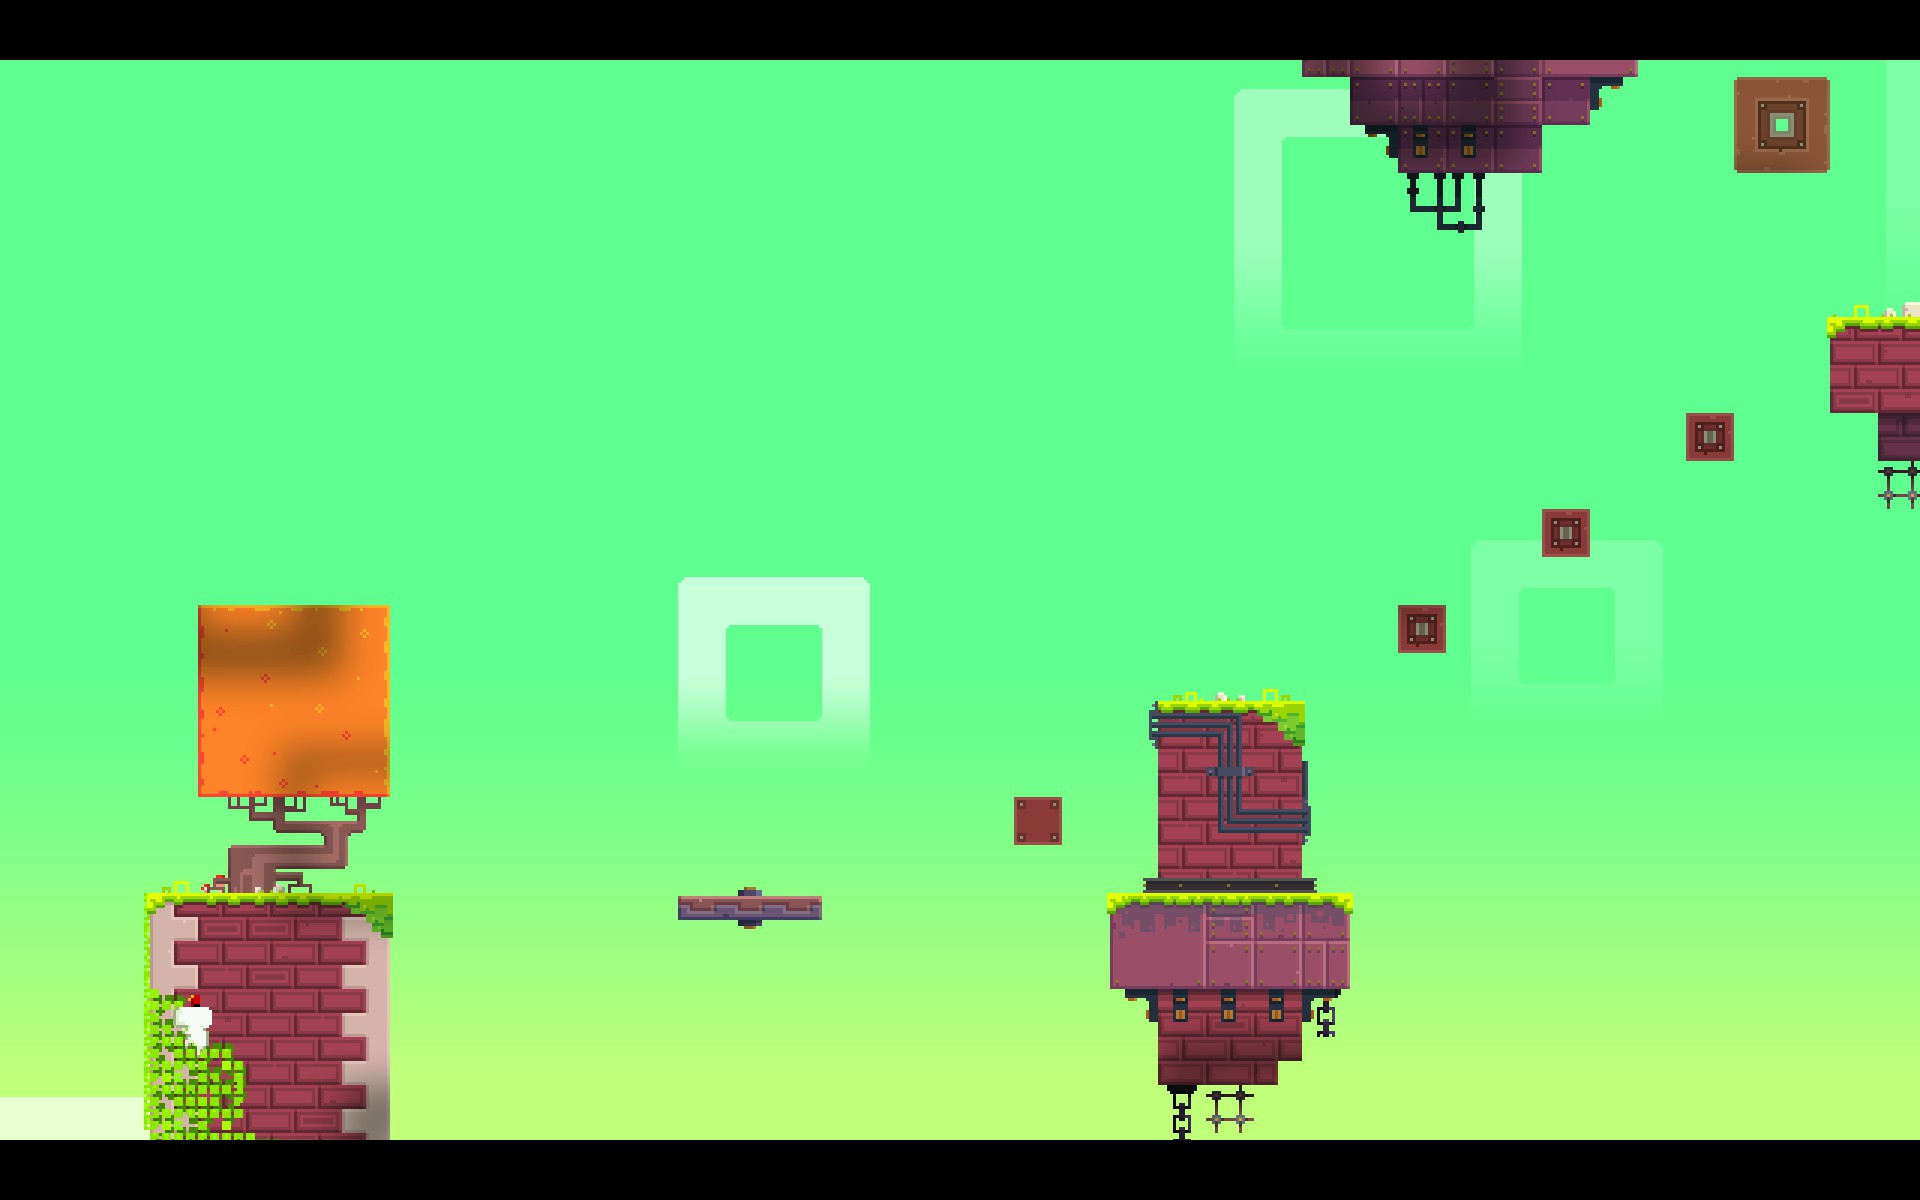 Head to the top of the other platform Flip to the right and stand on its piston You ll fly next to a new brick tower with vines on it